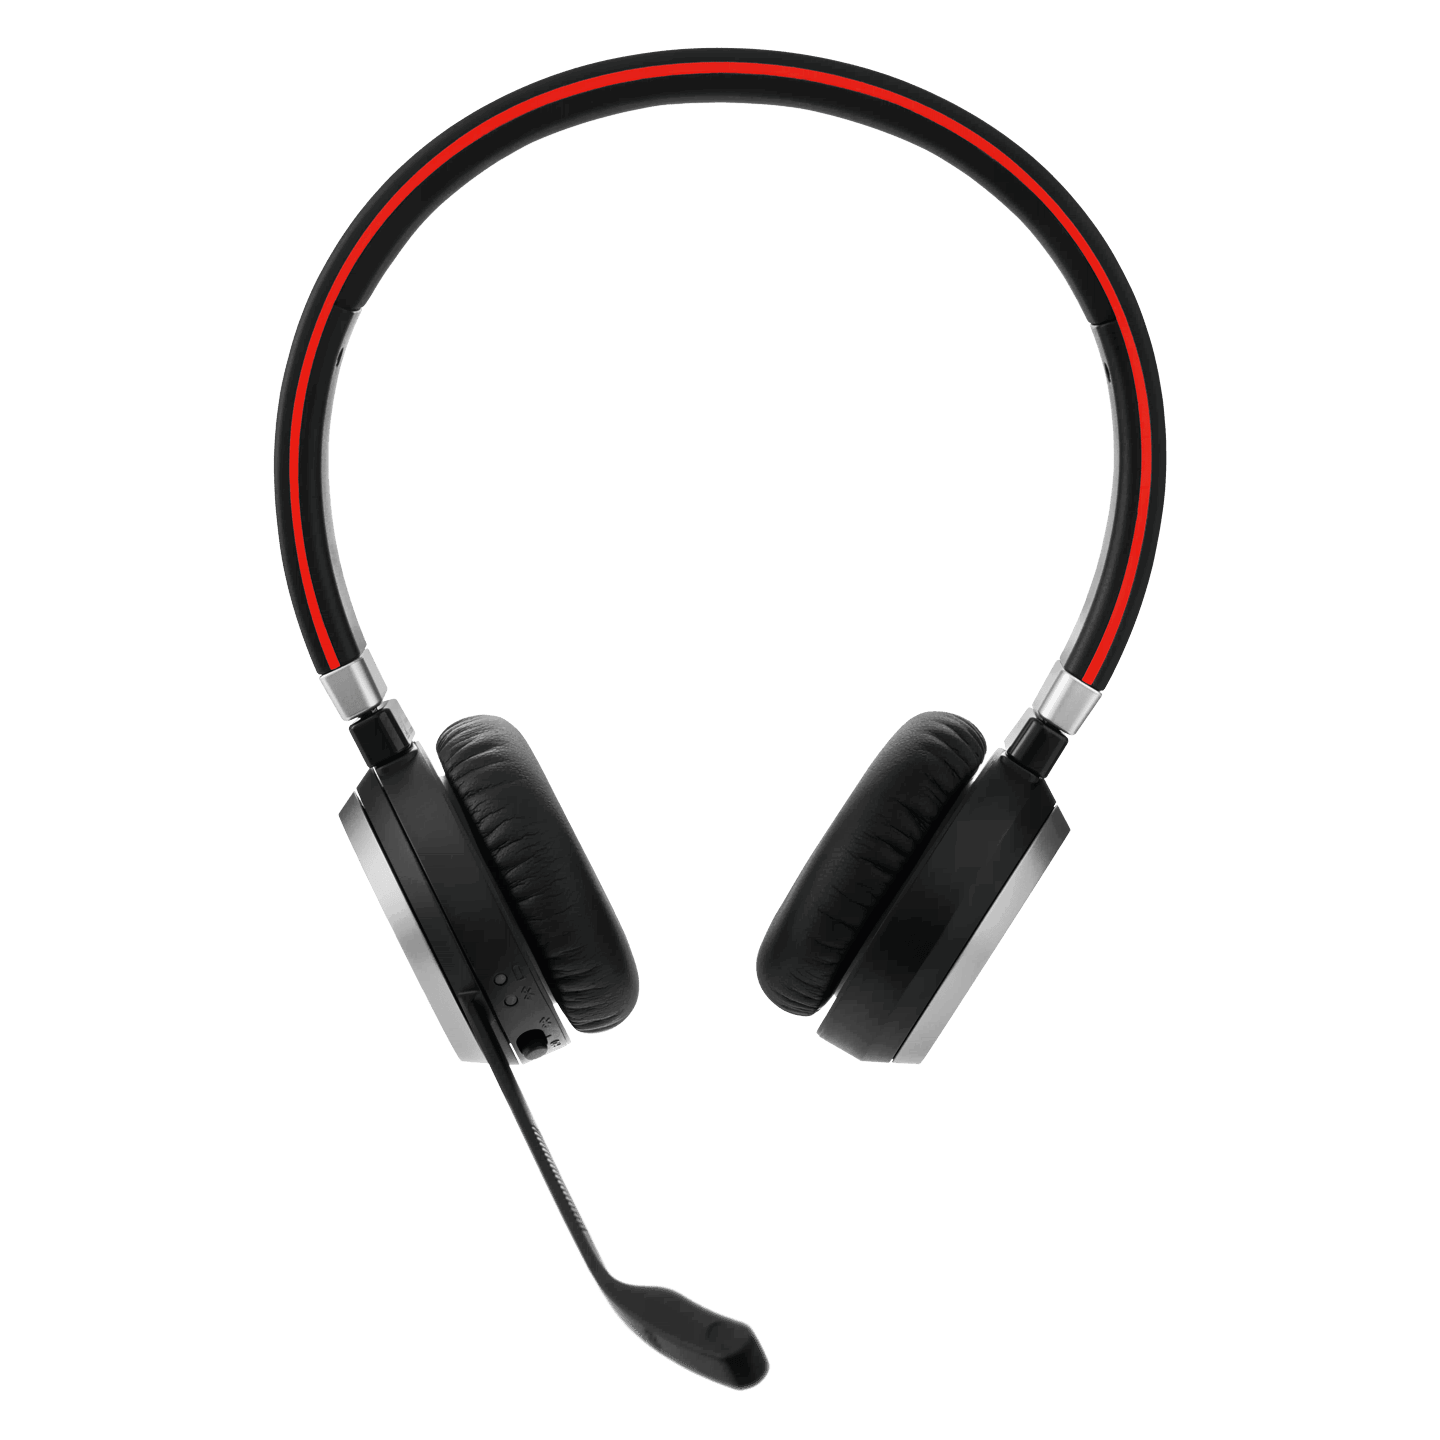 Jabra Evolve 65 Uc Stereo Headset 6599 823 499 Headsets Direct